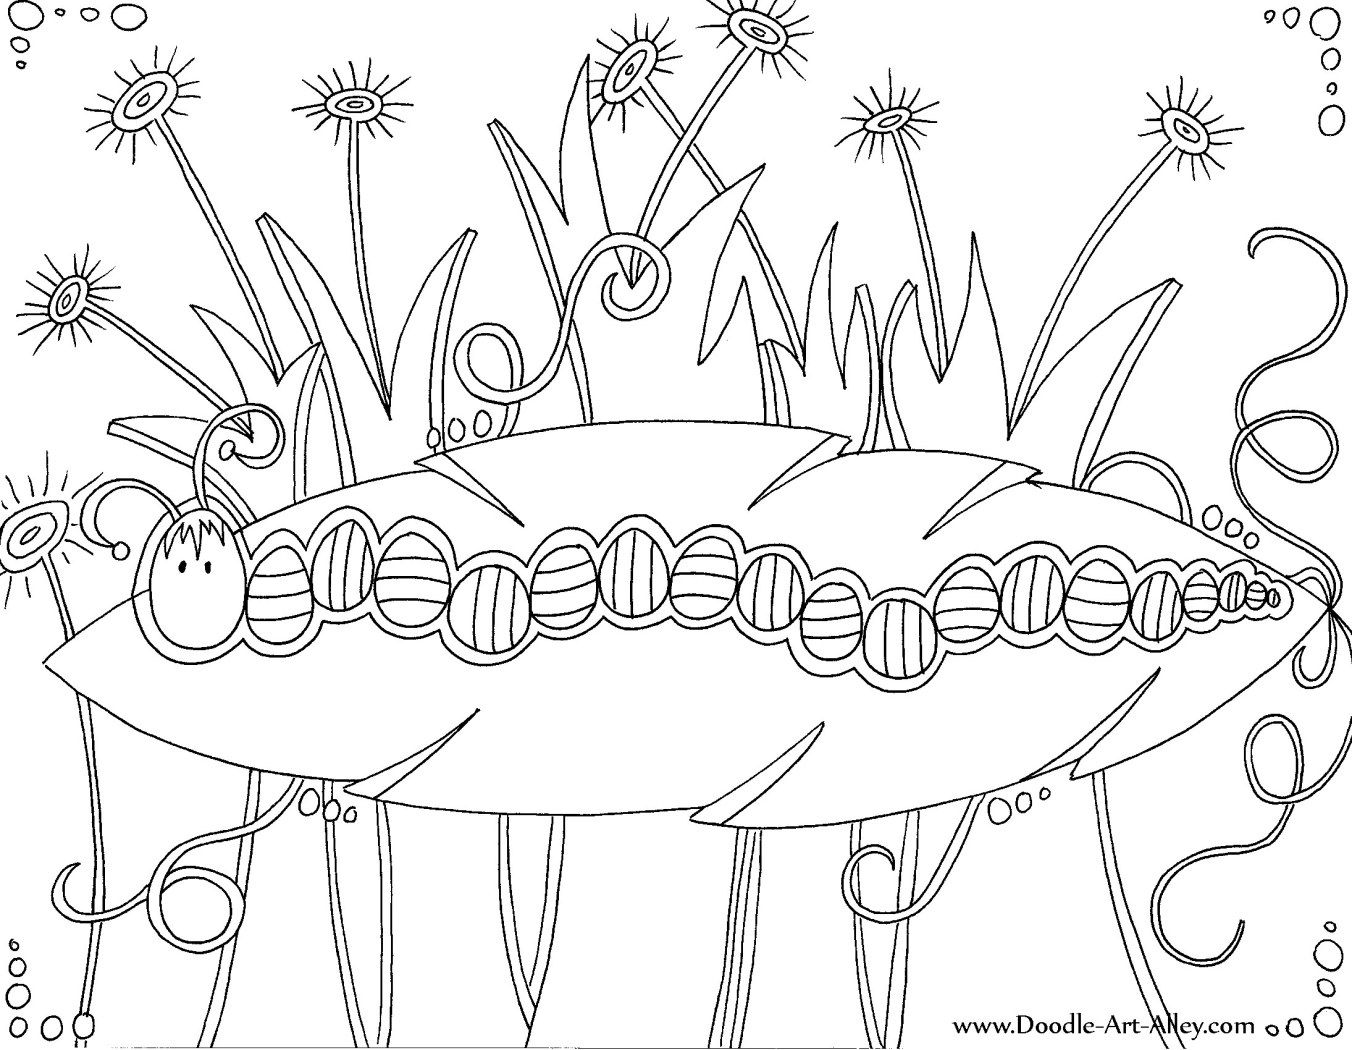 Insect Coloring Pages Animal Coloring Pages Coloring Pages [ 1050 x 1352 Pixel ]